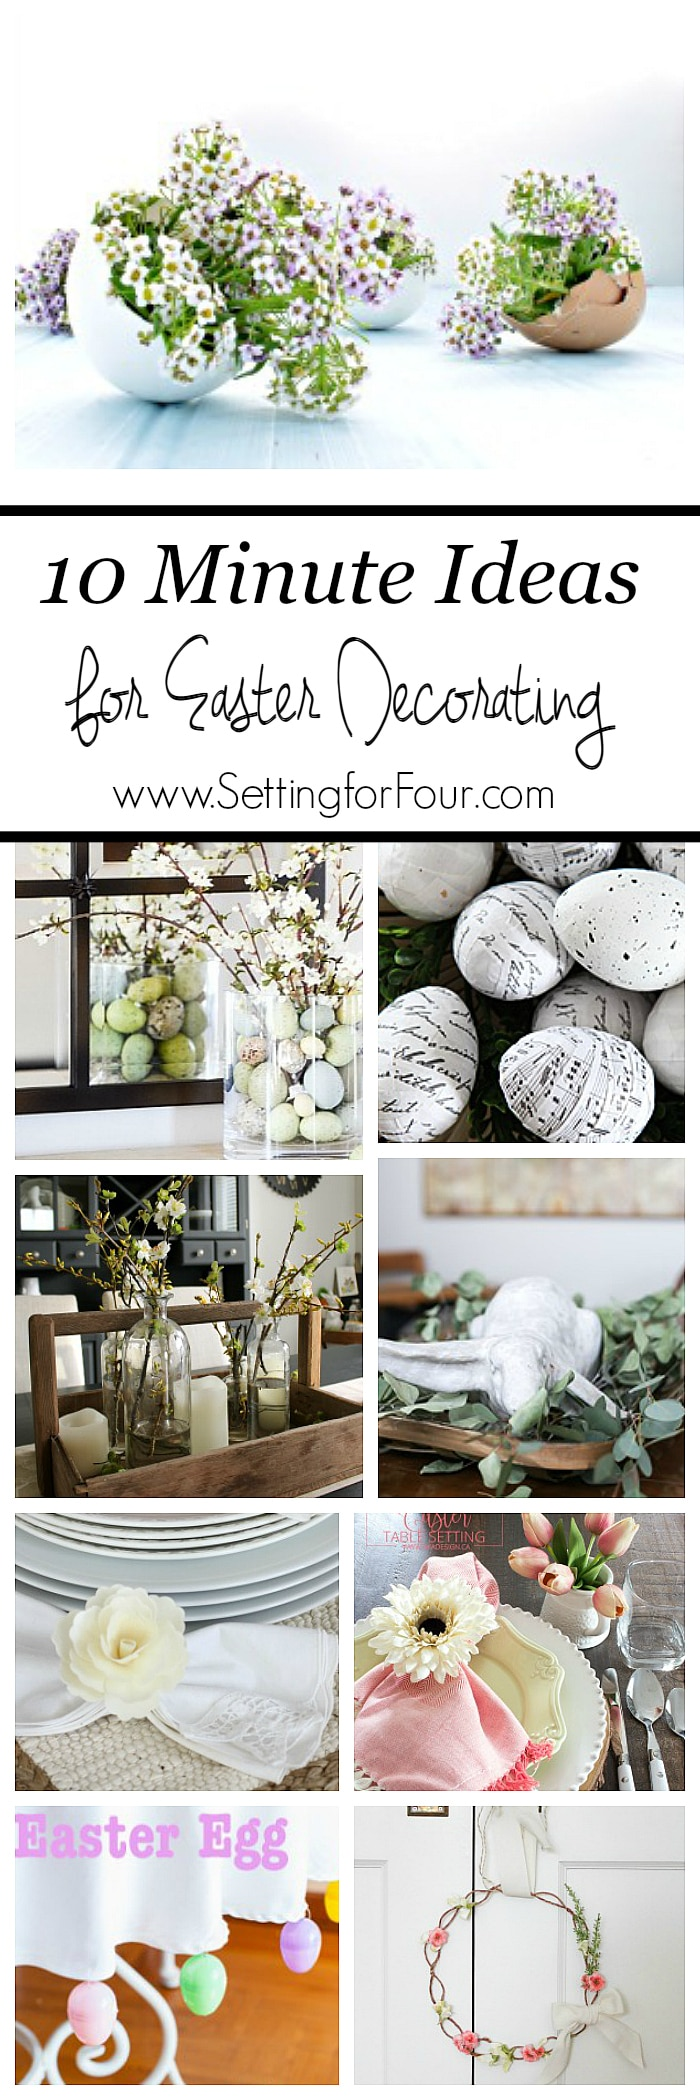 10 Minute Easter Decorating Ideas - simple, quick and easy decor ideas when you're short on time!